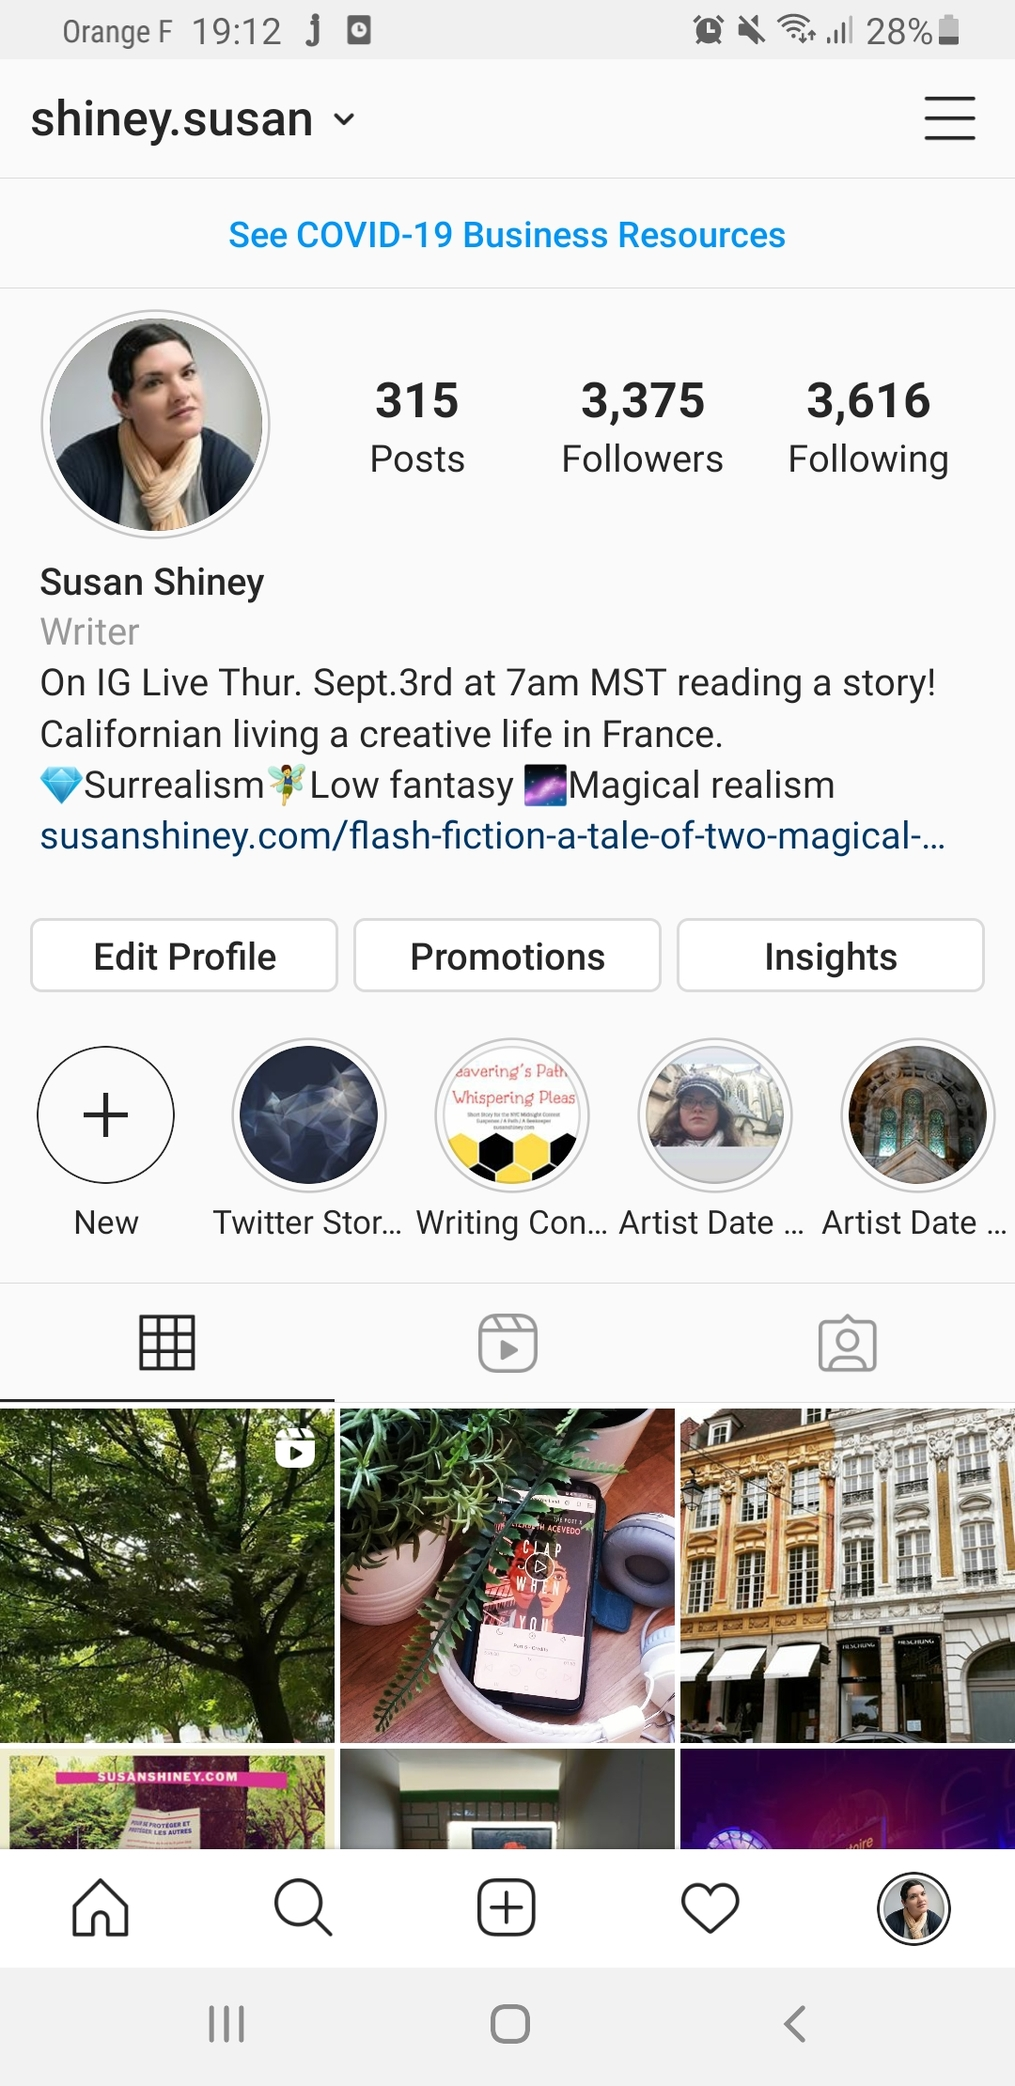 Instagram-Profile-with-announcement-of-times-for-the-IG-Live-for-Writers-Instagram-Live-for-writers-susan-shiney-for-the-just-a-spell-teaser-reading-series-with-lou-britt